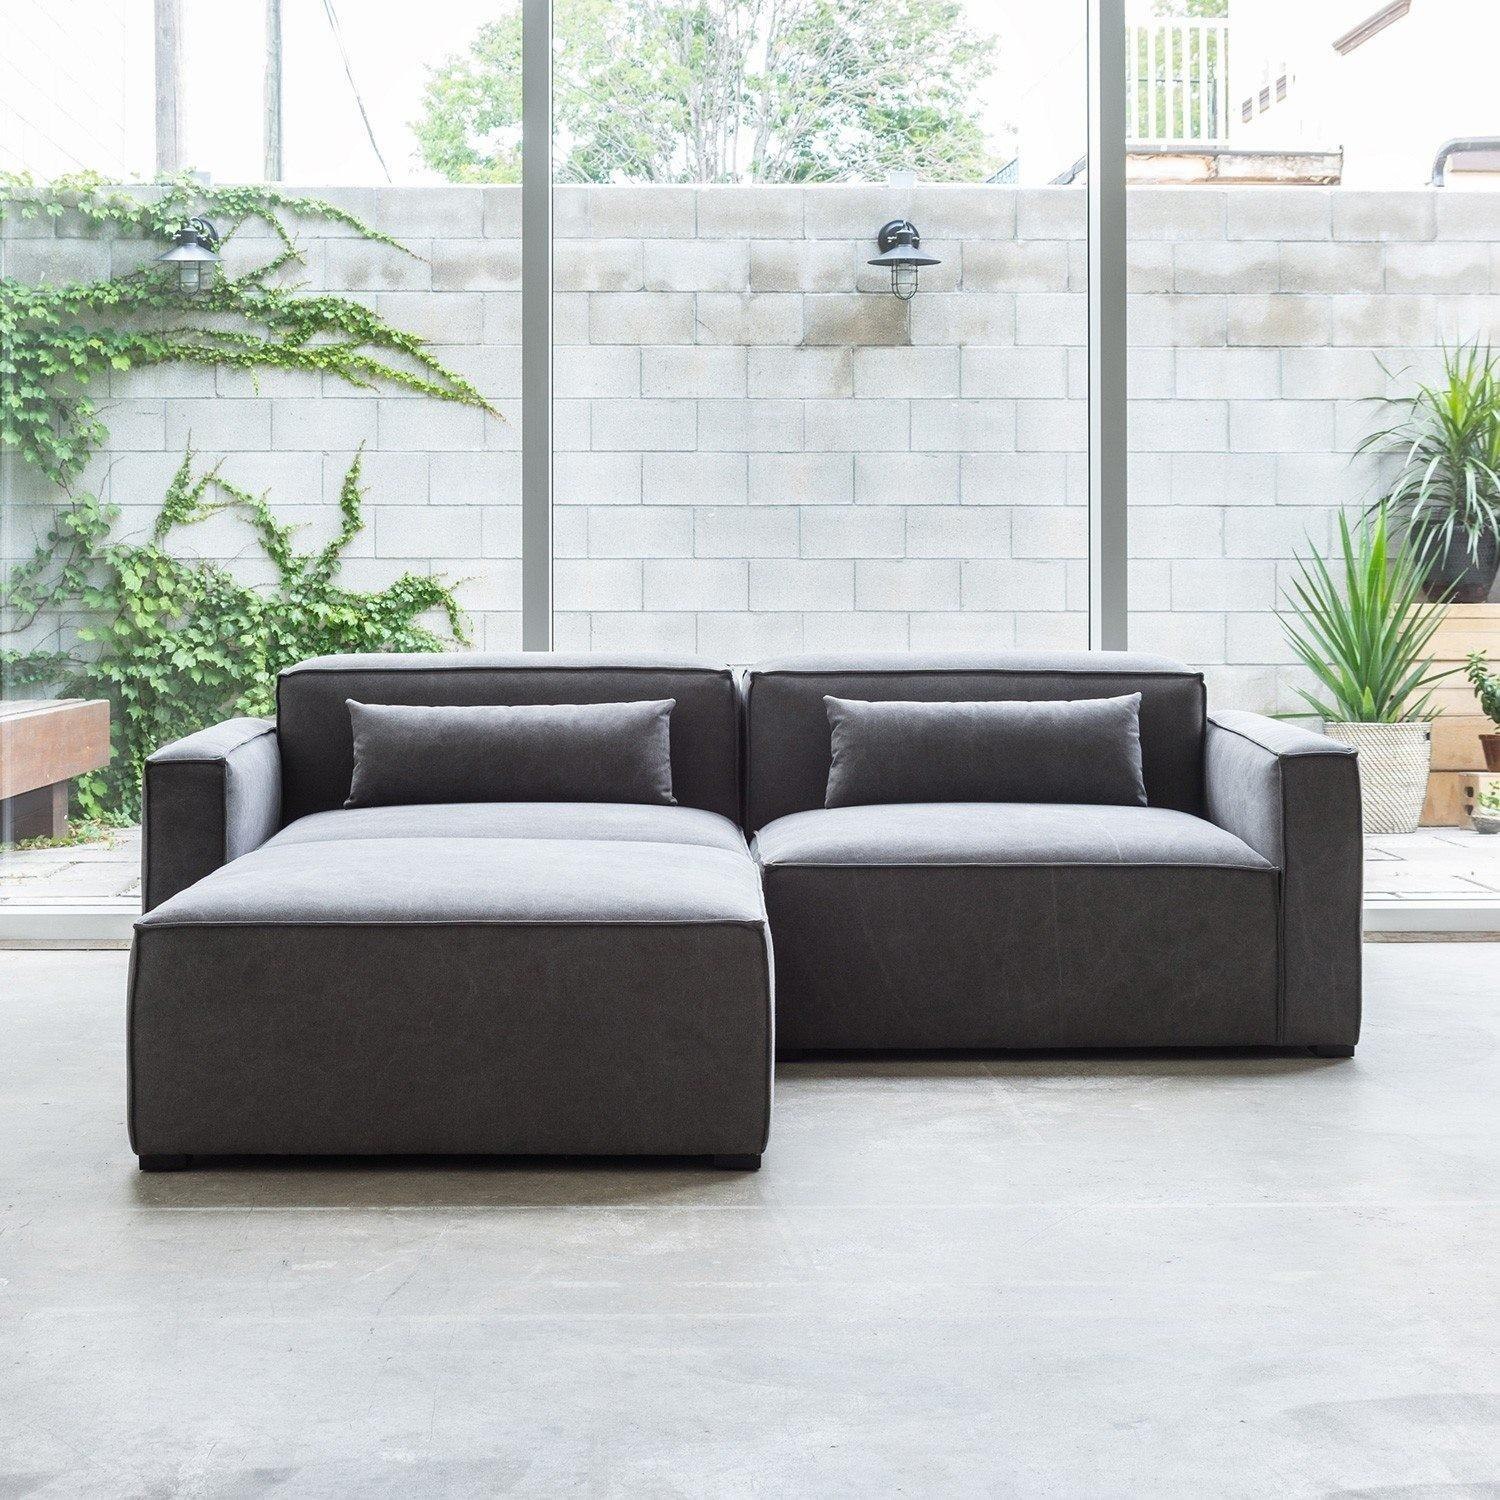 Modern Modular Sectional Sofa Cheap Simple Gray